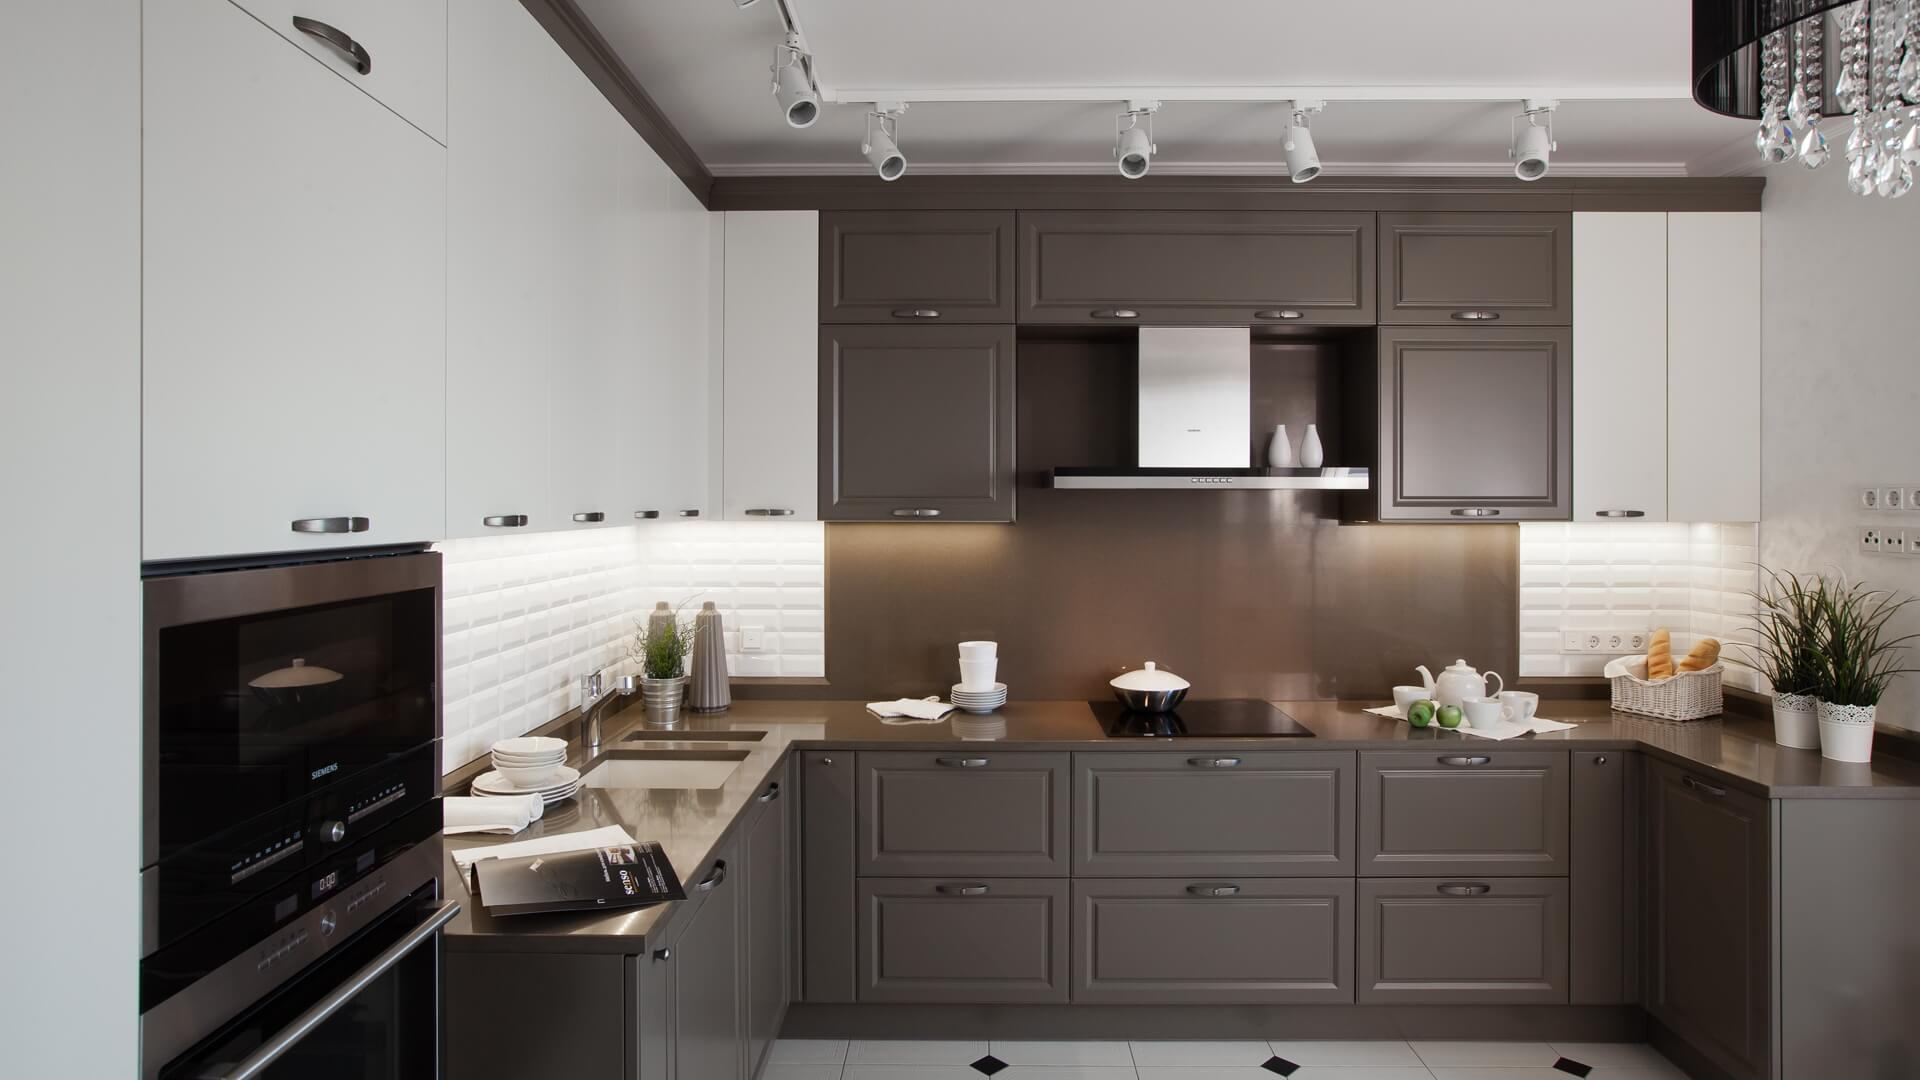 Custom Kitchen Cabinetry Southern Ontario Senso Design